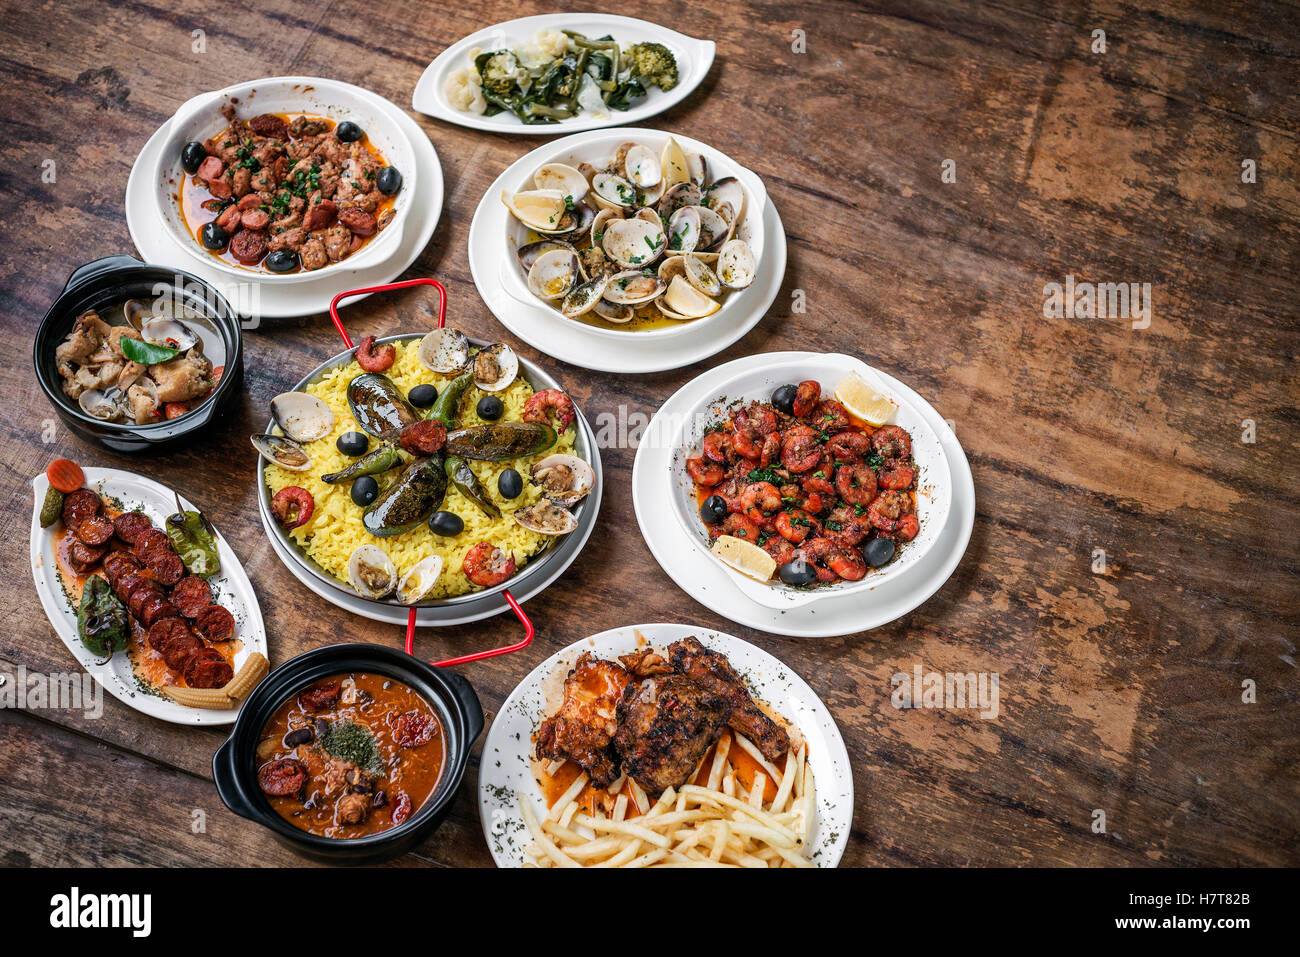 mixed portuguese traditional rustic tapas famous food selection on wood table - Stock Image